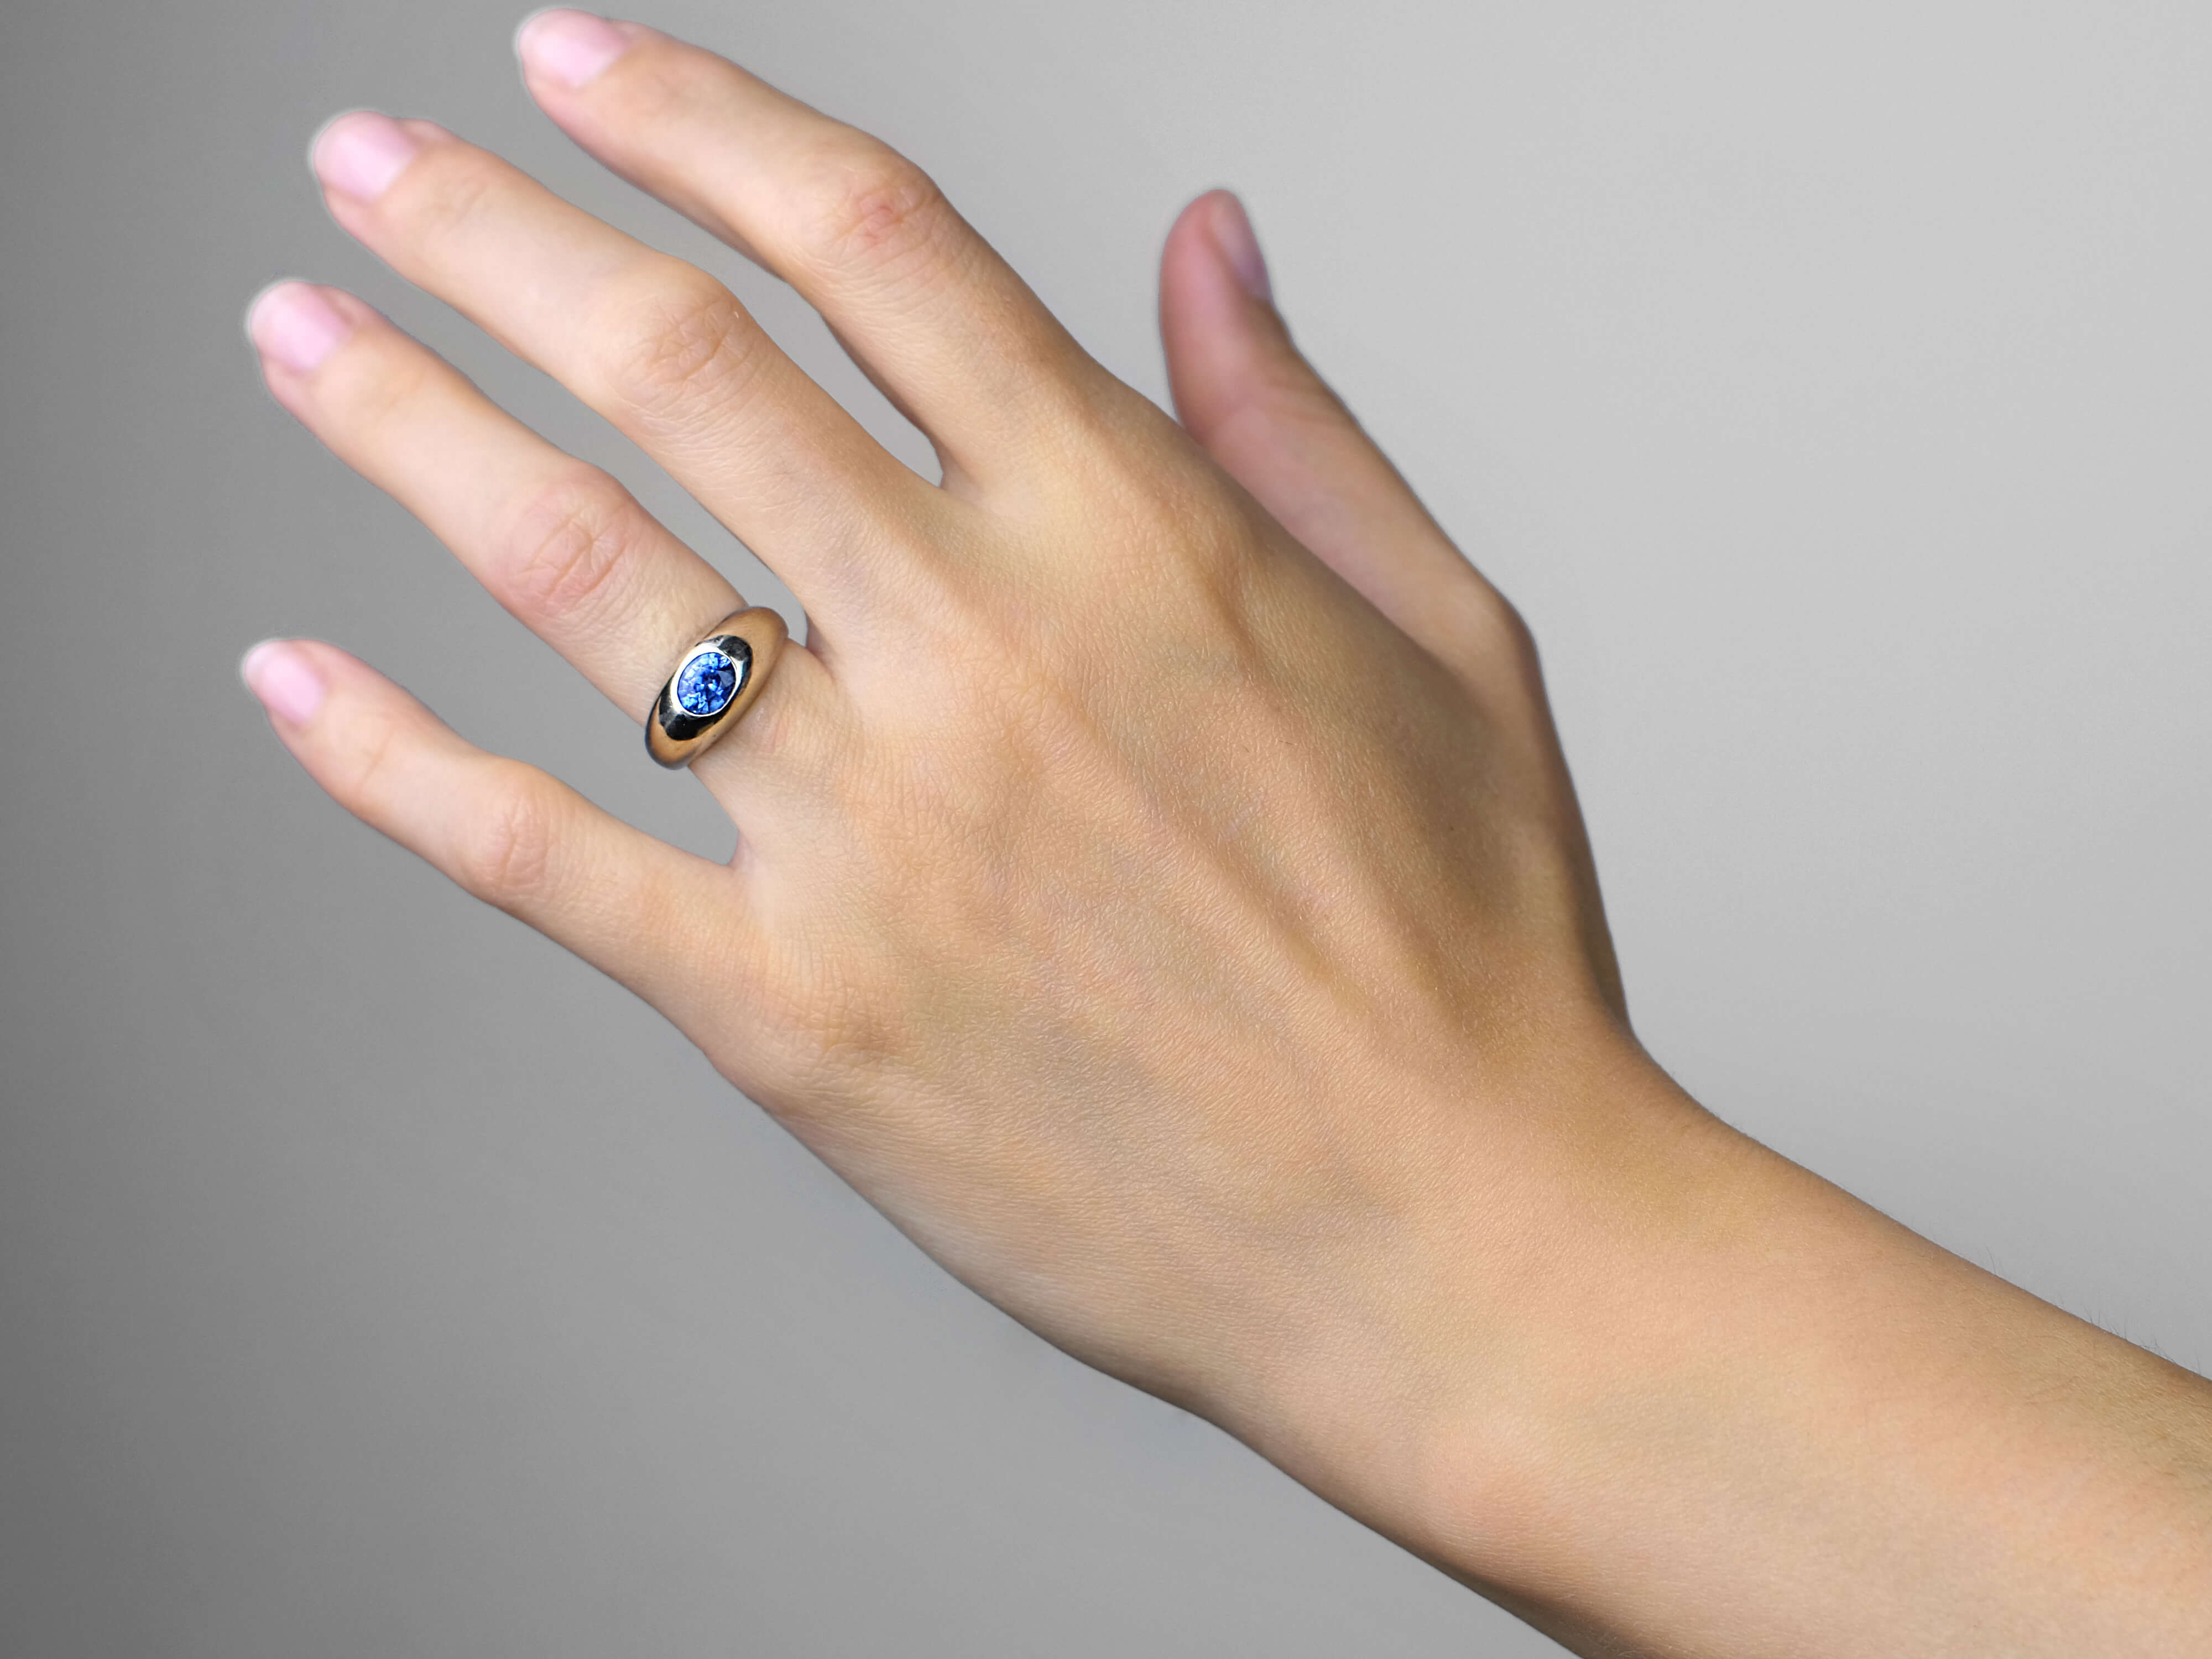 14ct White Gold Ring Set With an Oval Ceylon Sapphire